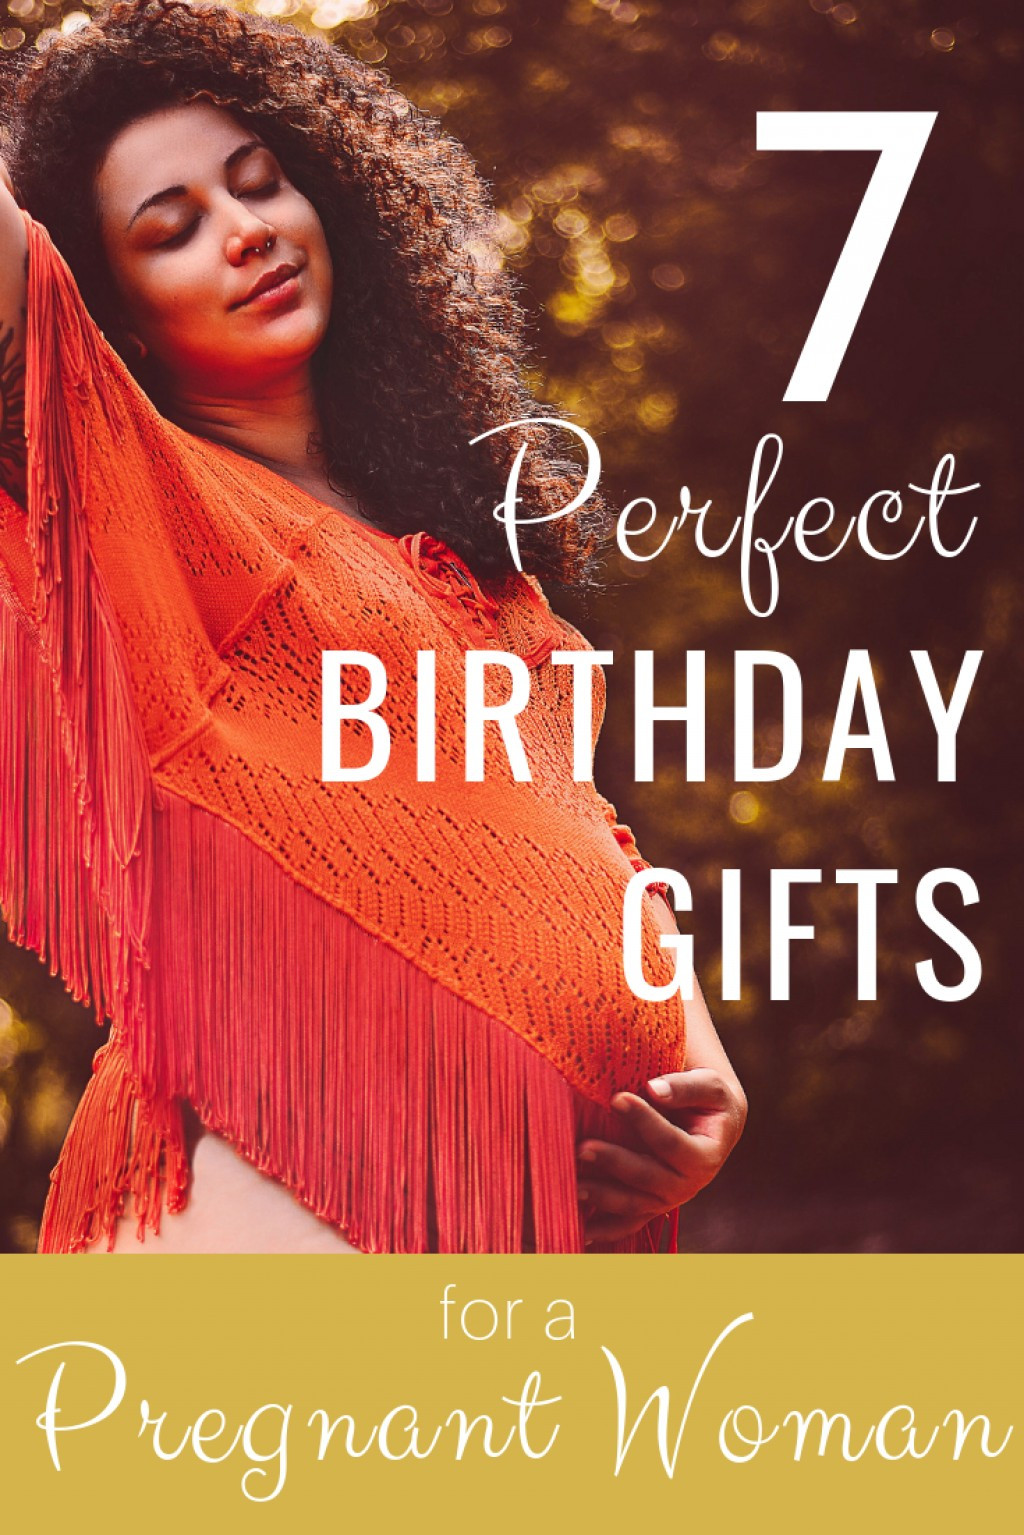 Best ideas about Gift Ideas For Pregnant Daughter . Save or Pin 7 Perfect Birthday Gifts for Your Pregnant Wife Now.